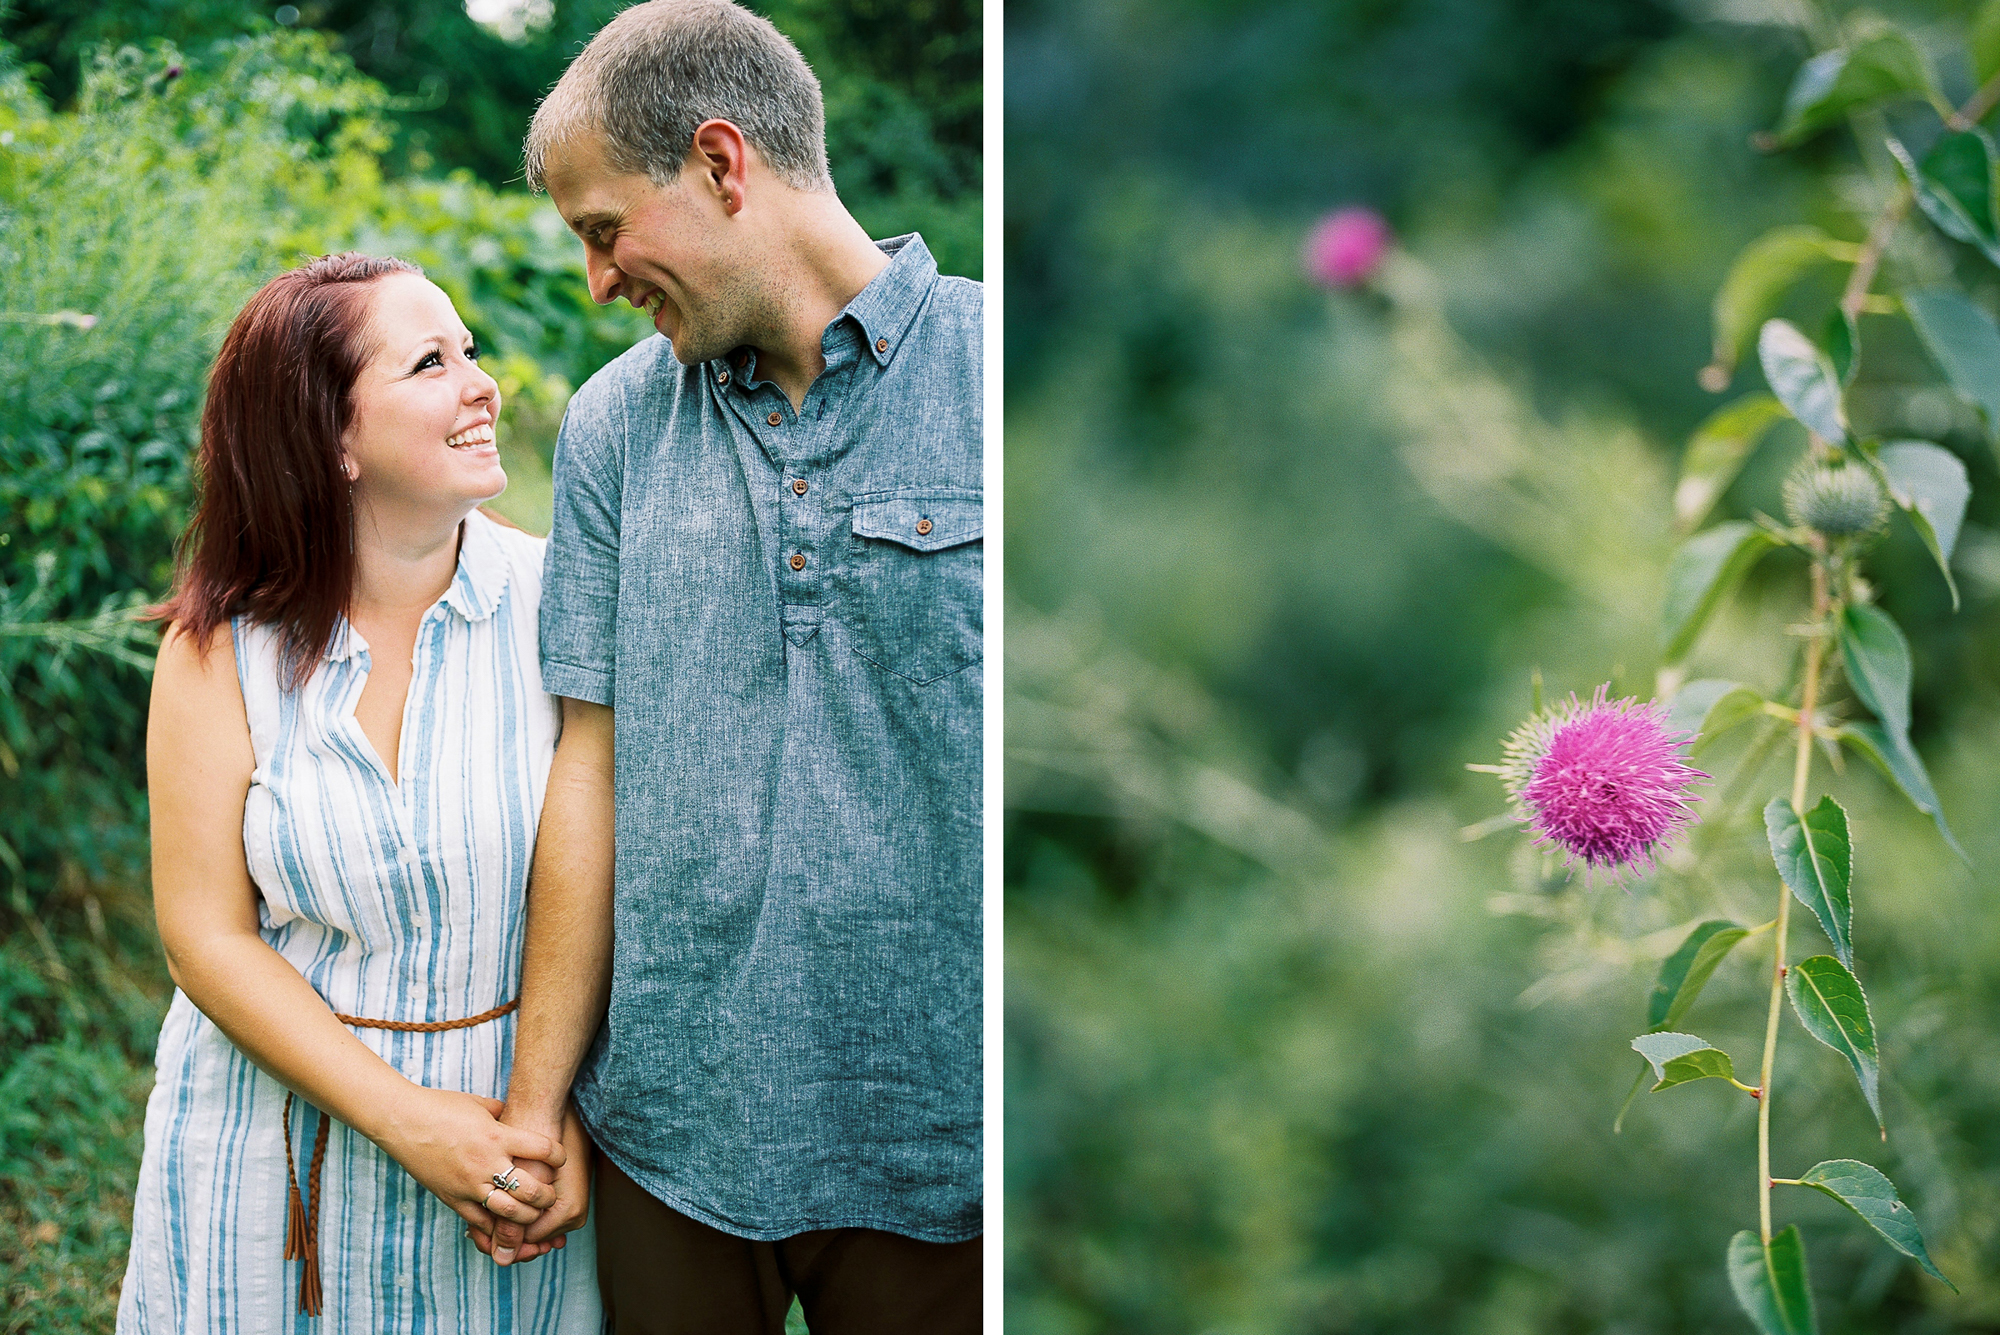 Alexandra-Elise-Photography-Ali-Reed-Film-Farm-Engagement-Session-034